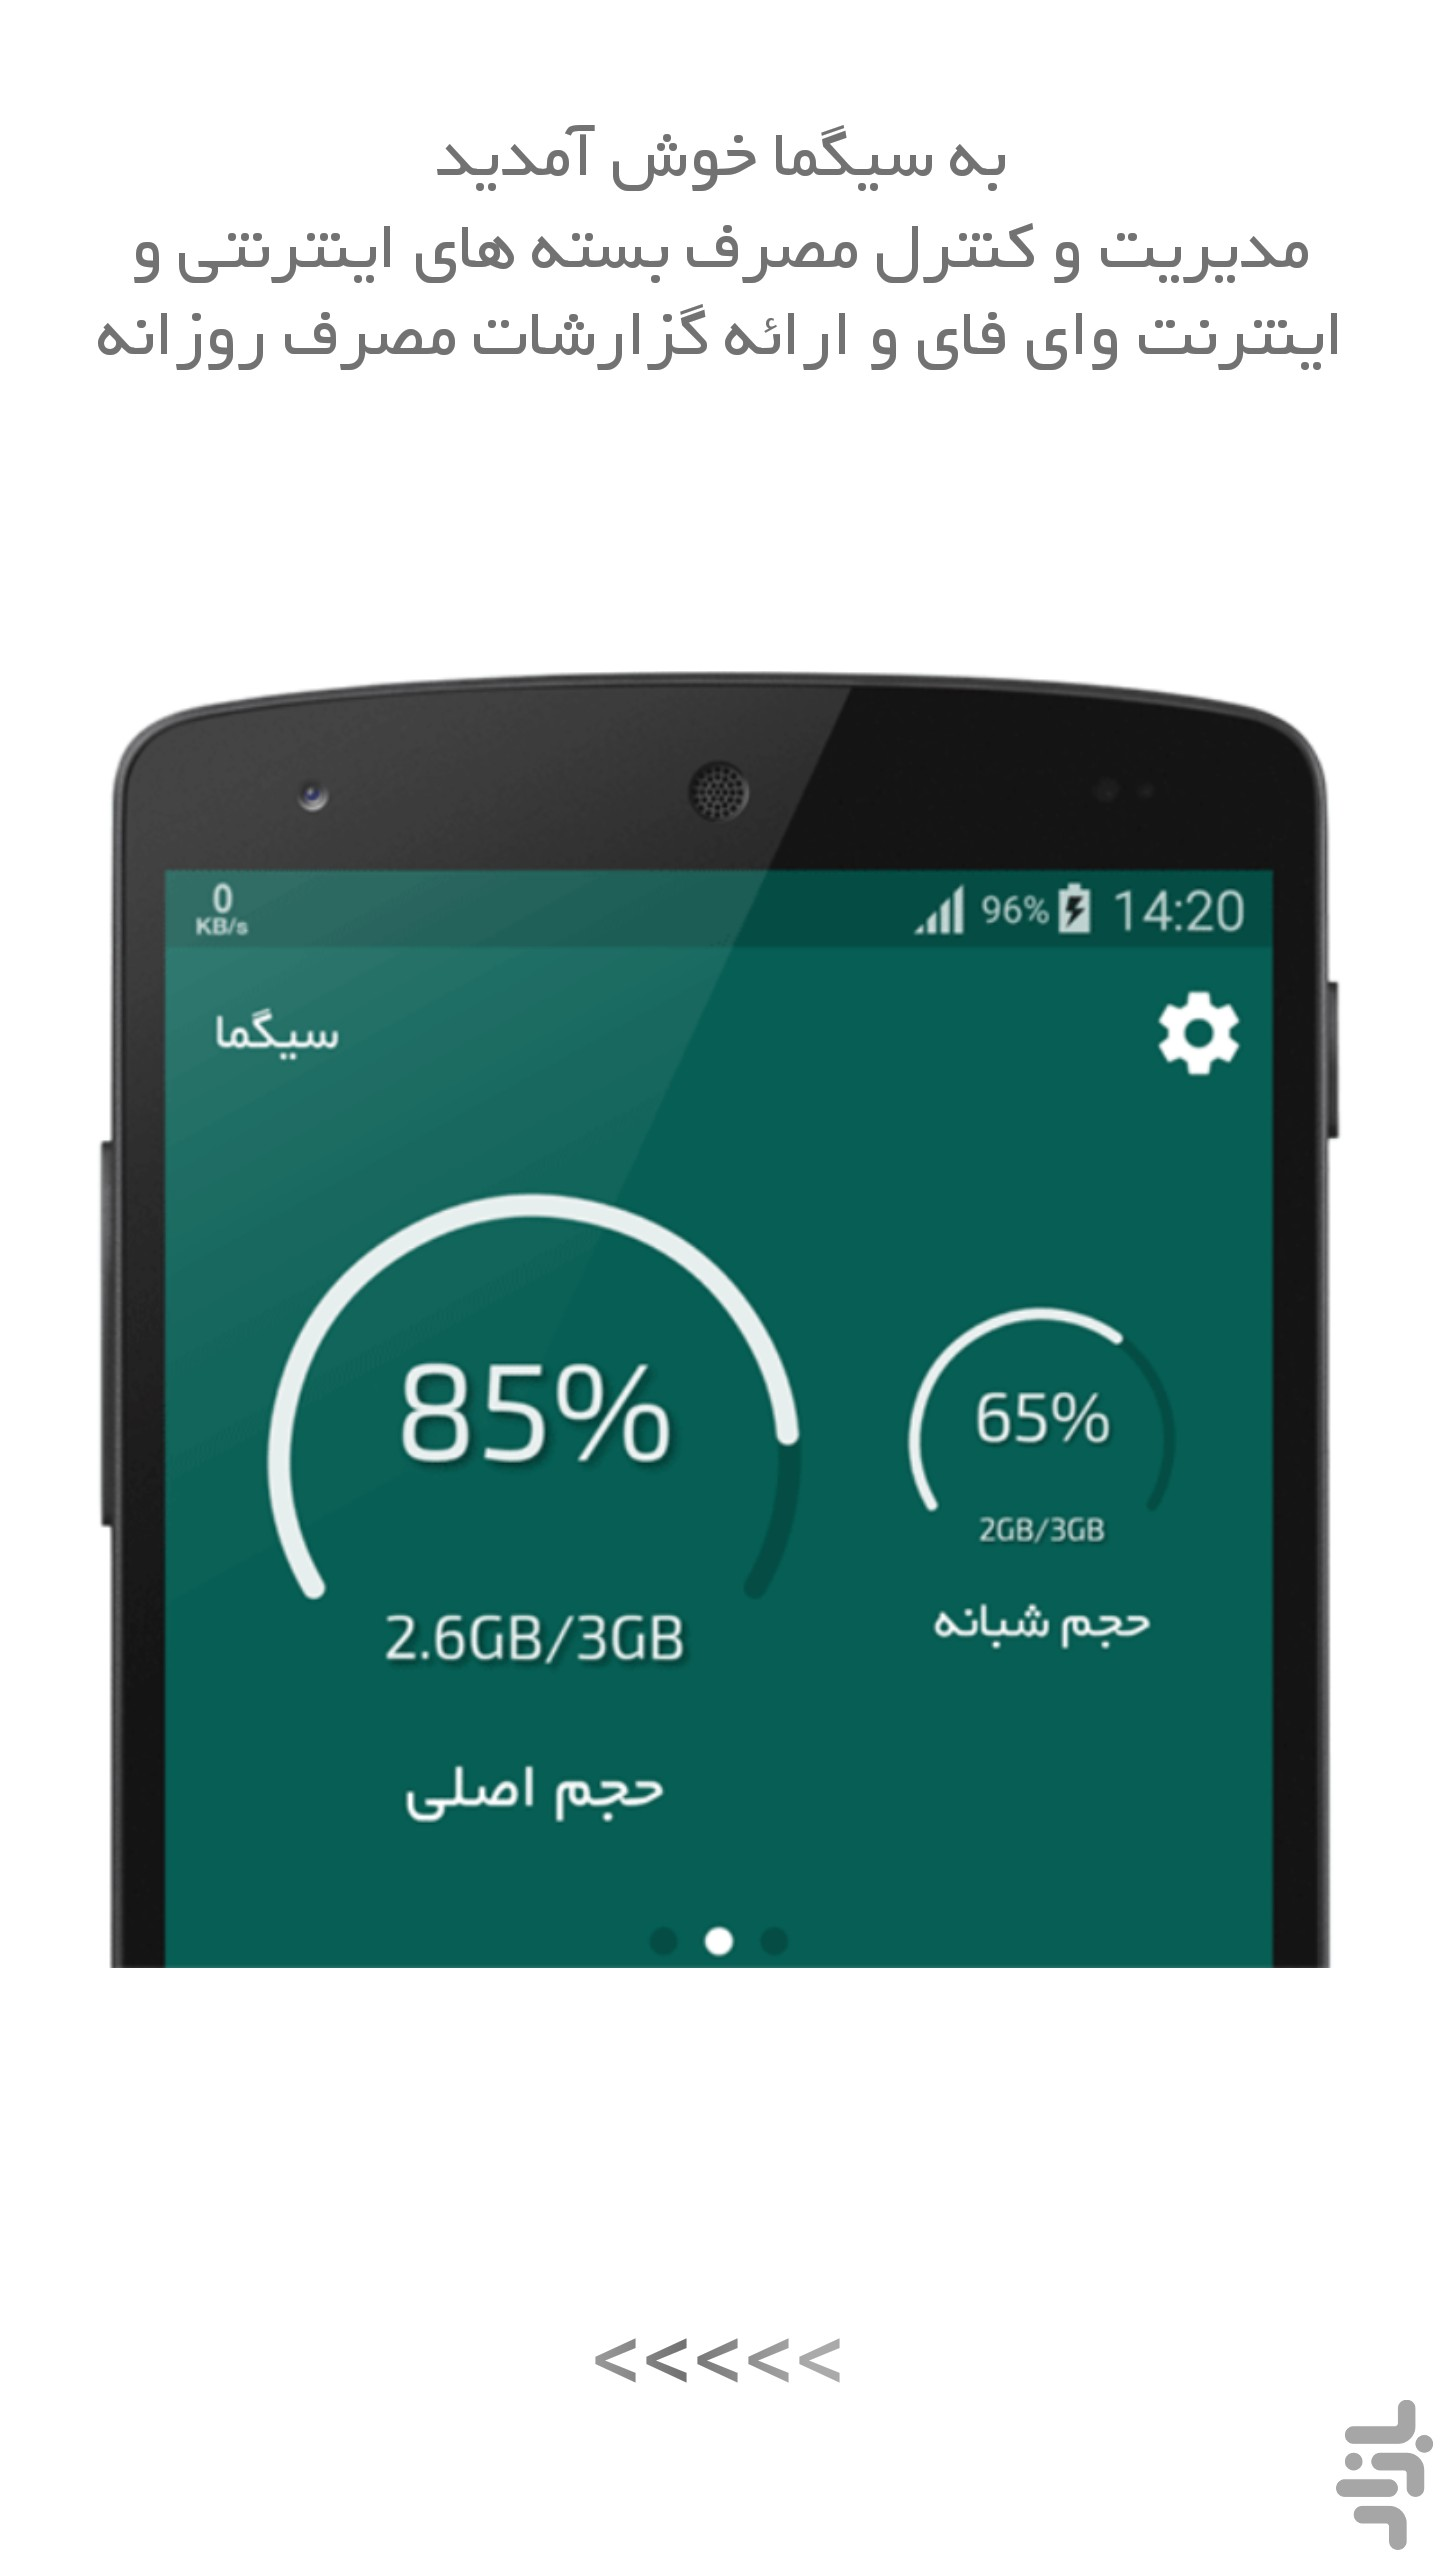 Sigma - Data Manager 3G/4G/WiFi